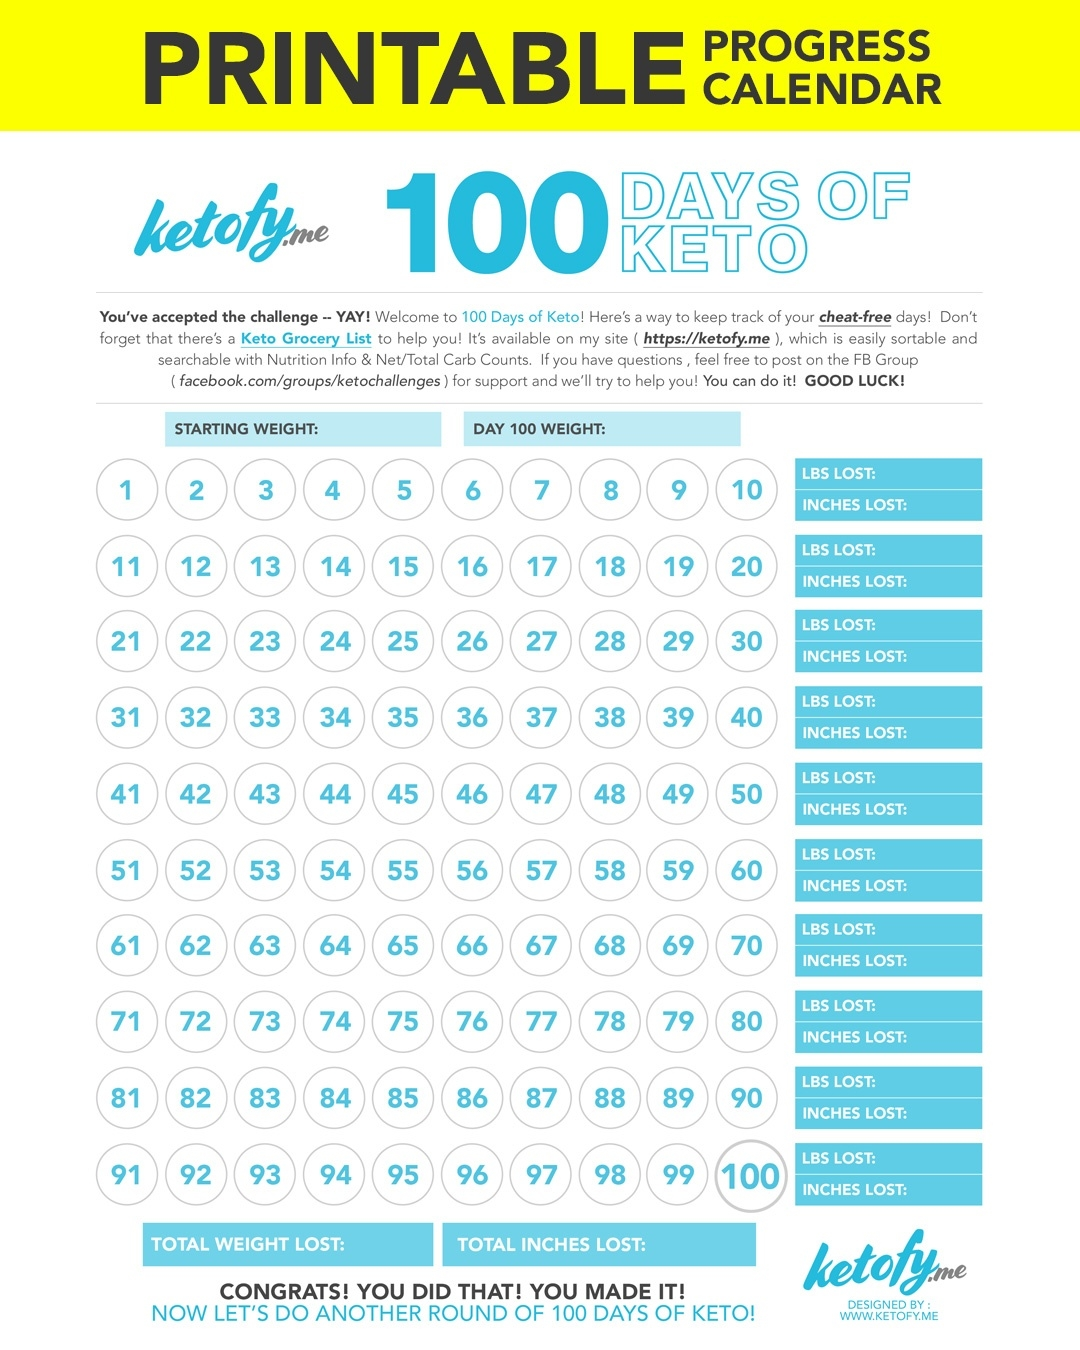 Keto ~ Fy Me | Cut Carbs, Not Flavor! • 100 Days Of Keto Challenge_Countdown Calendar For Weight Loss